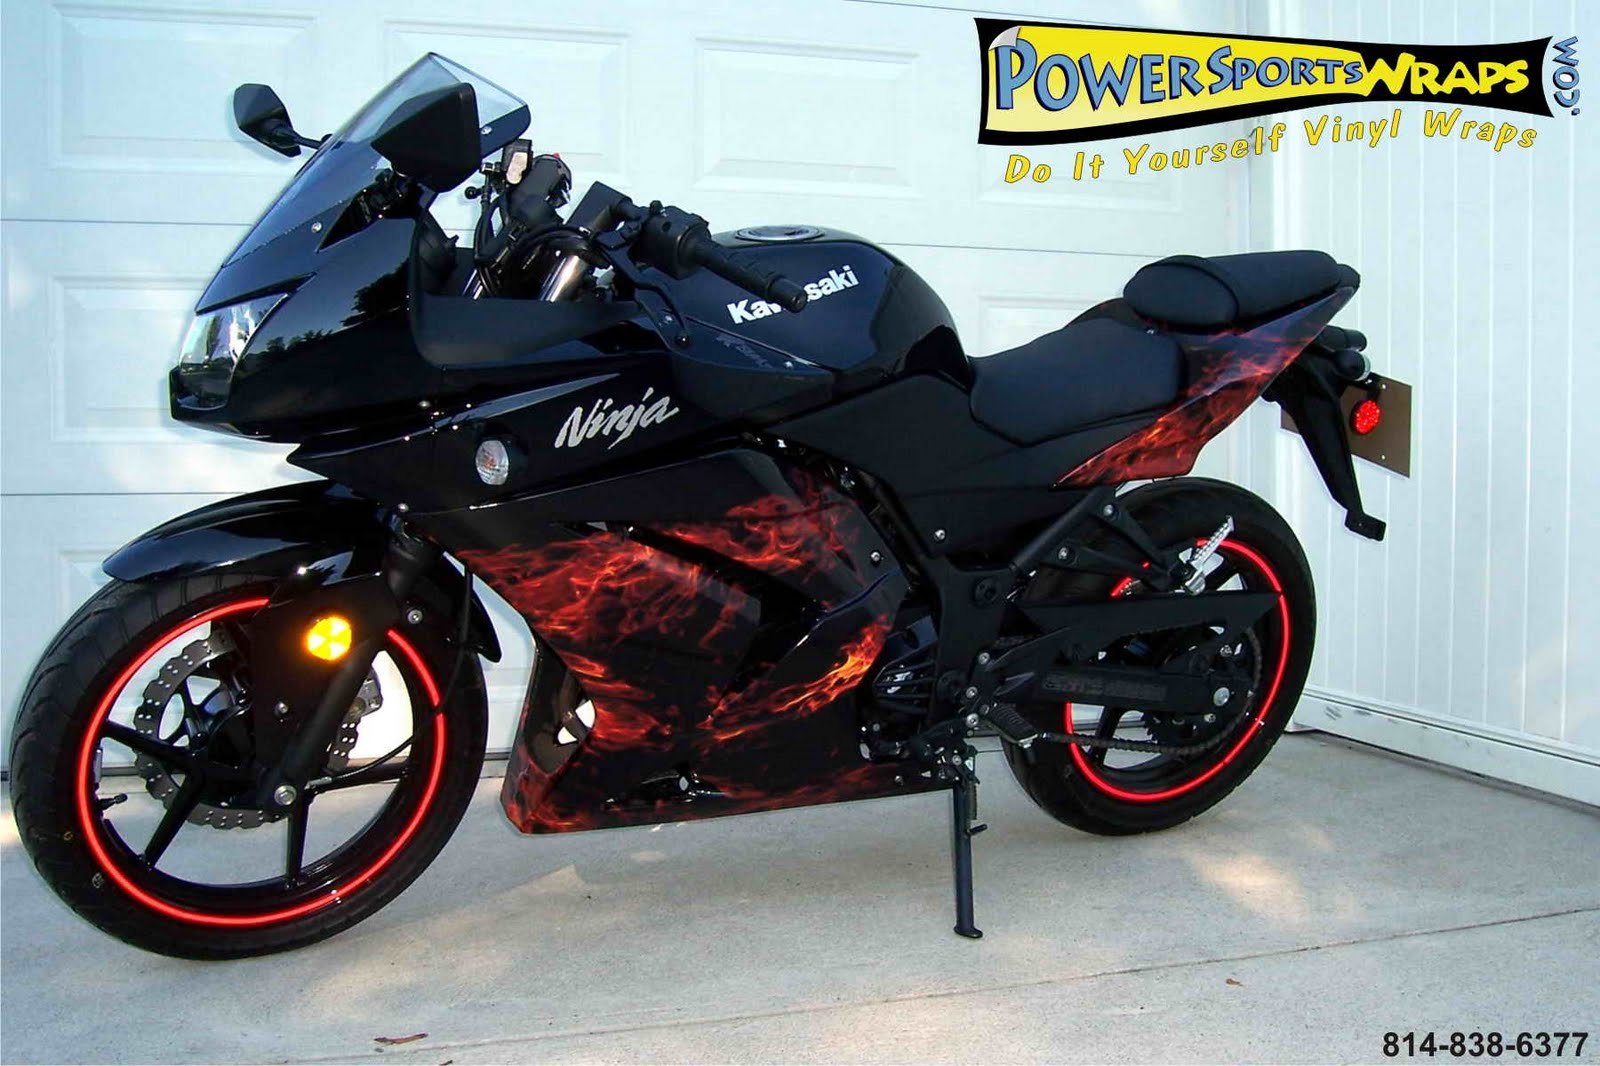 Kawasaki Ninja Custom With Flame Stickers Motorcycle Racing - Kawasaki motorcycles stickers